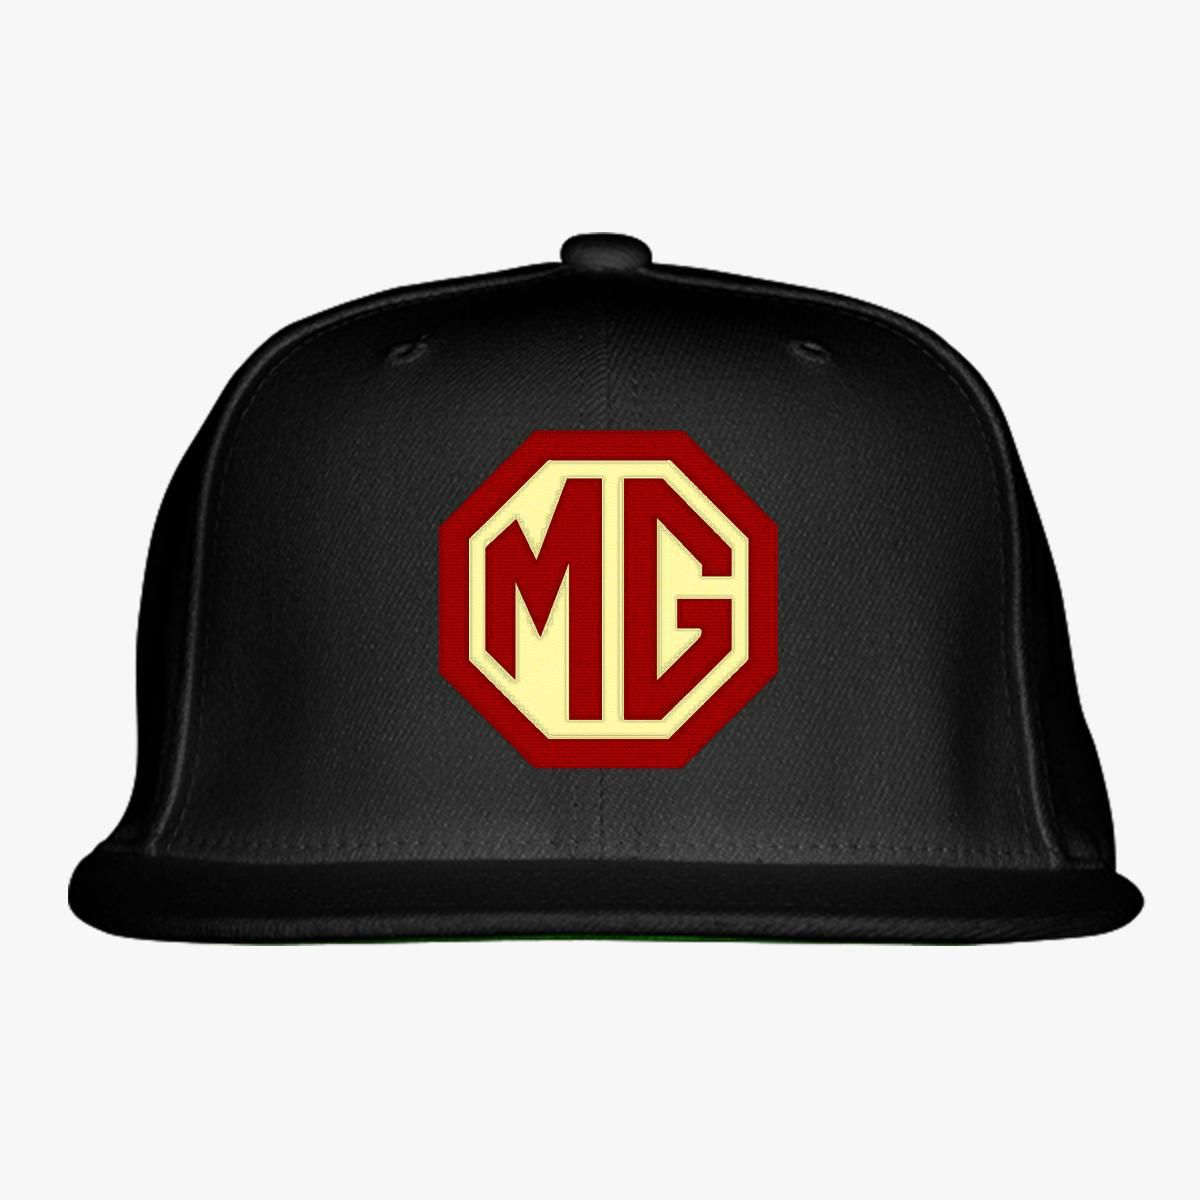 b4e24e4e37699 Mg Morris Garages Snapback Hat (Embroidered) - Customon